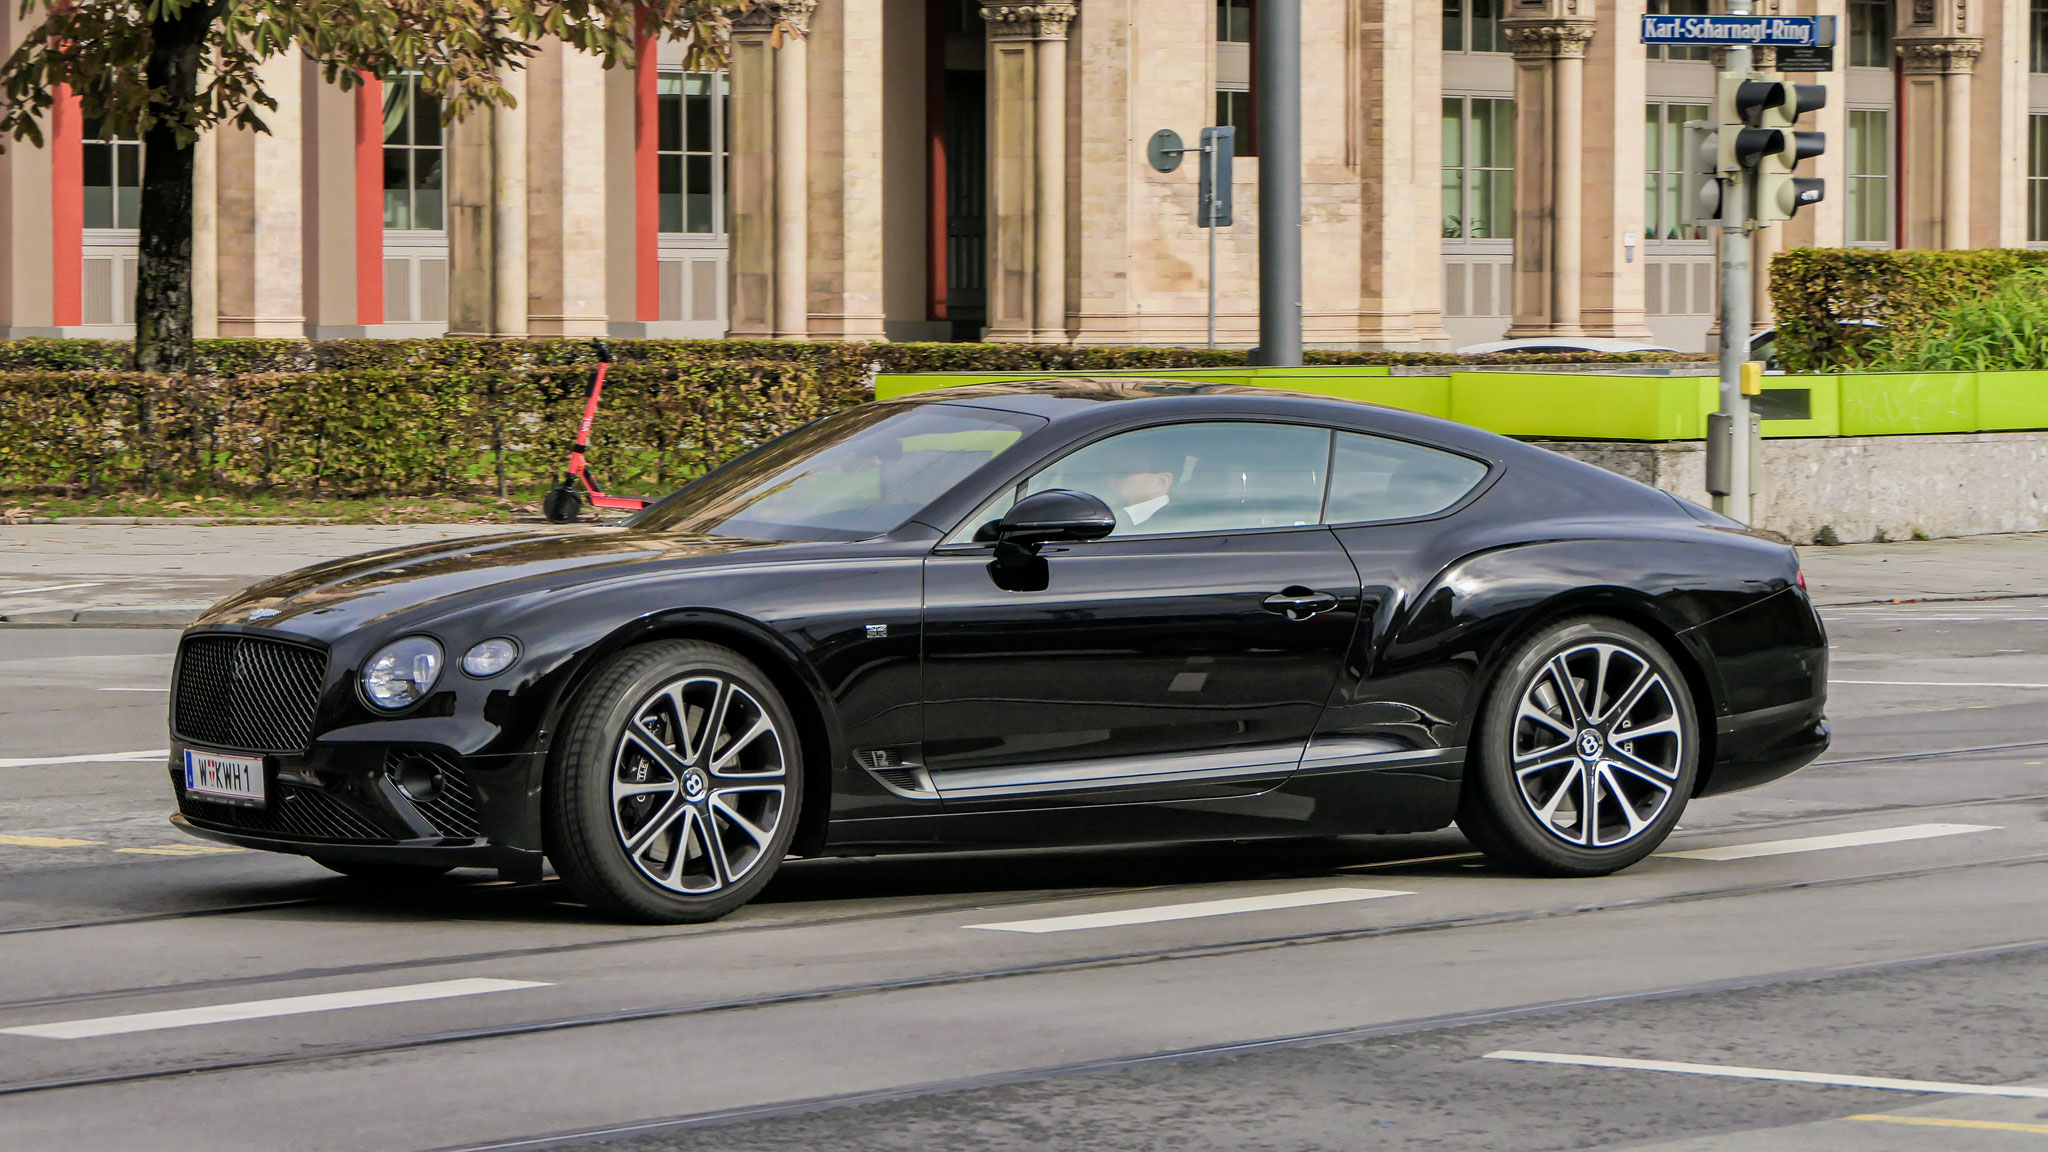 Bentley Continental GT - W-KWH-1 (AUT)